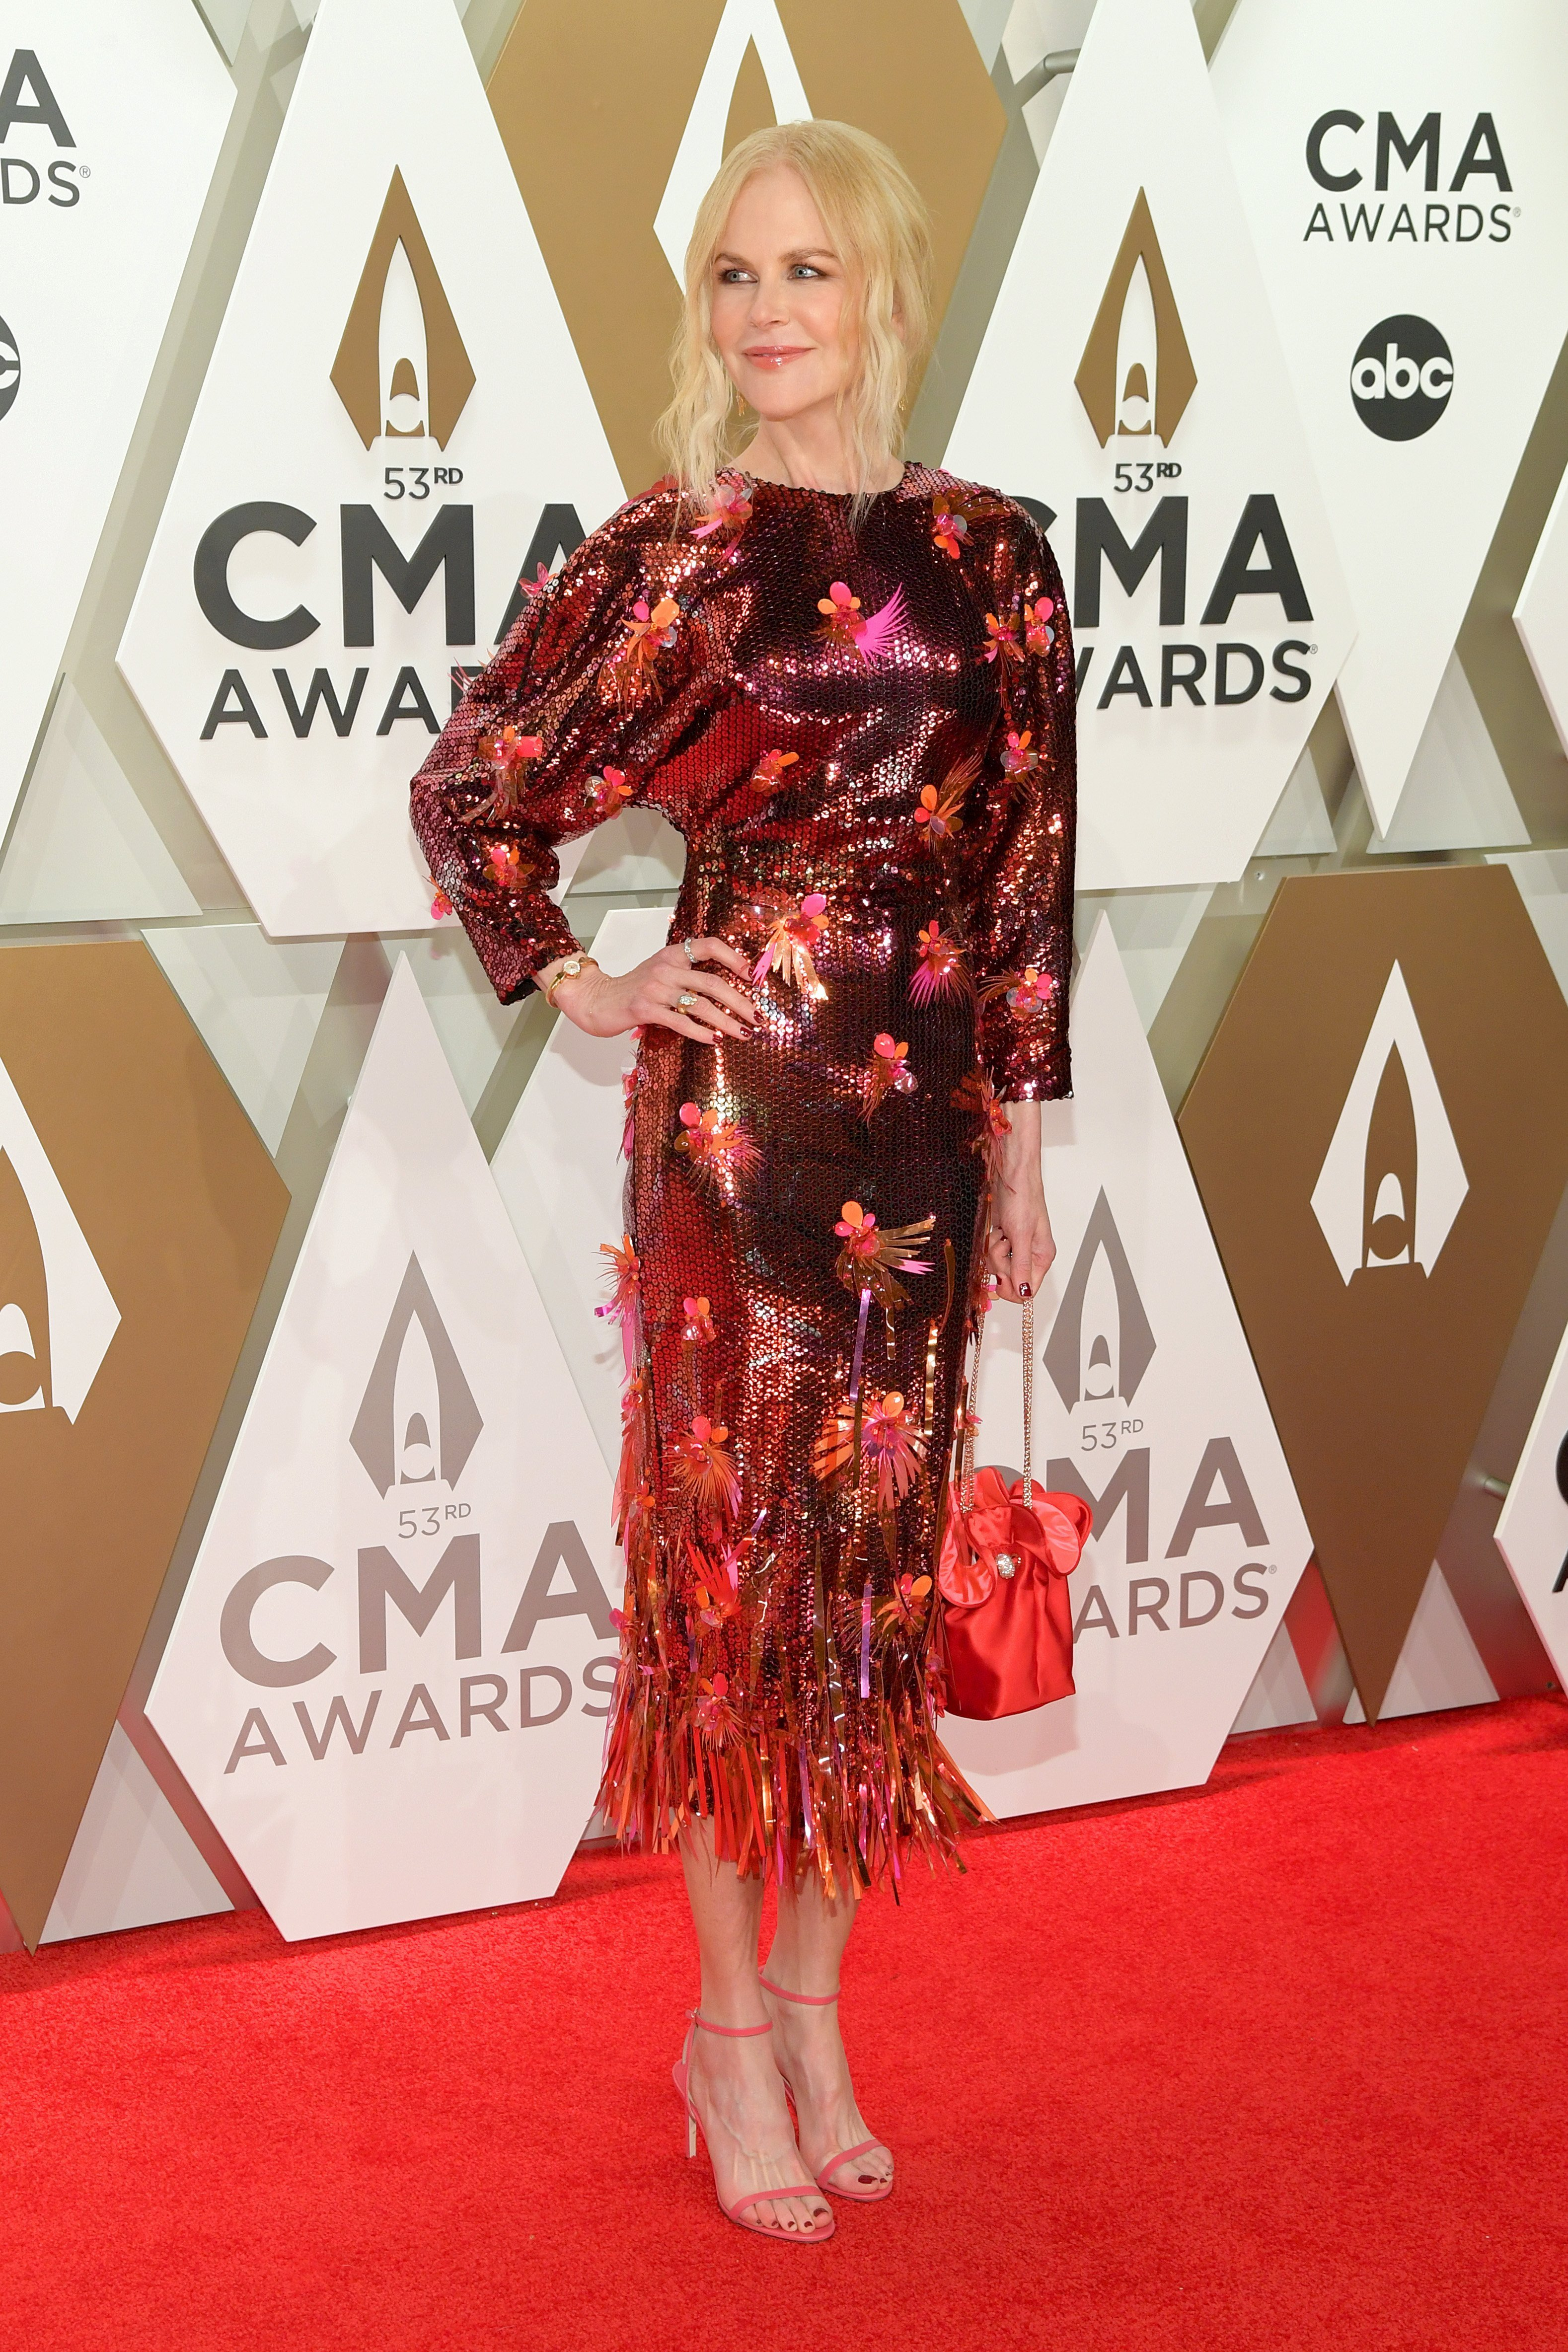 Nicole Kidman at the 53rd annual CMA Awards at Bridgestone Arena on November 13, 2019, in Nashville, Tennessee | Photo: Getty Images